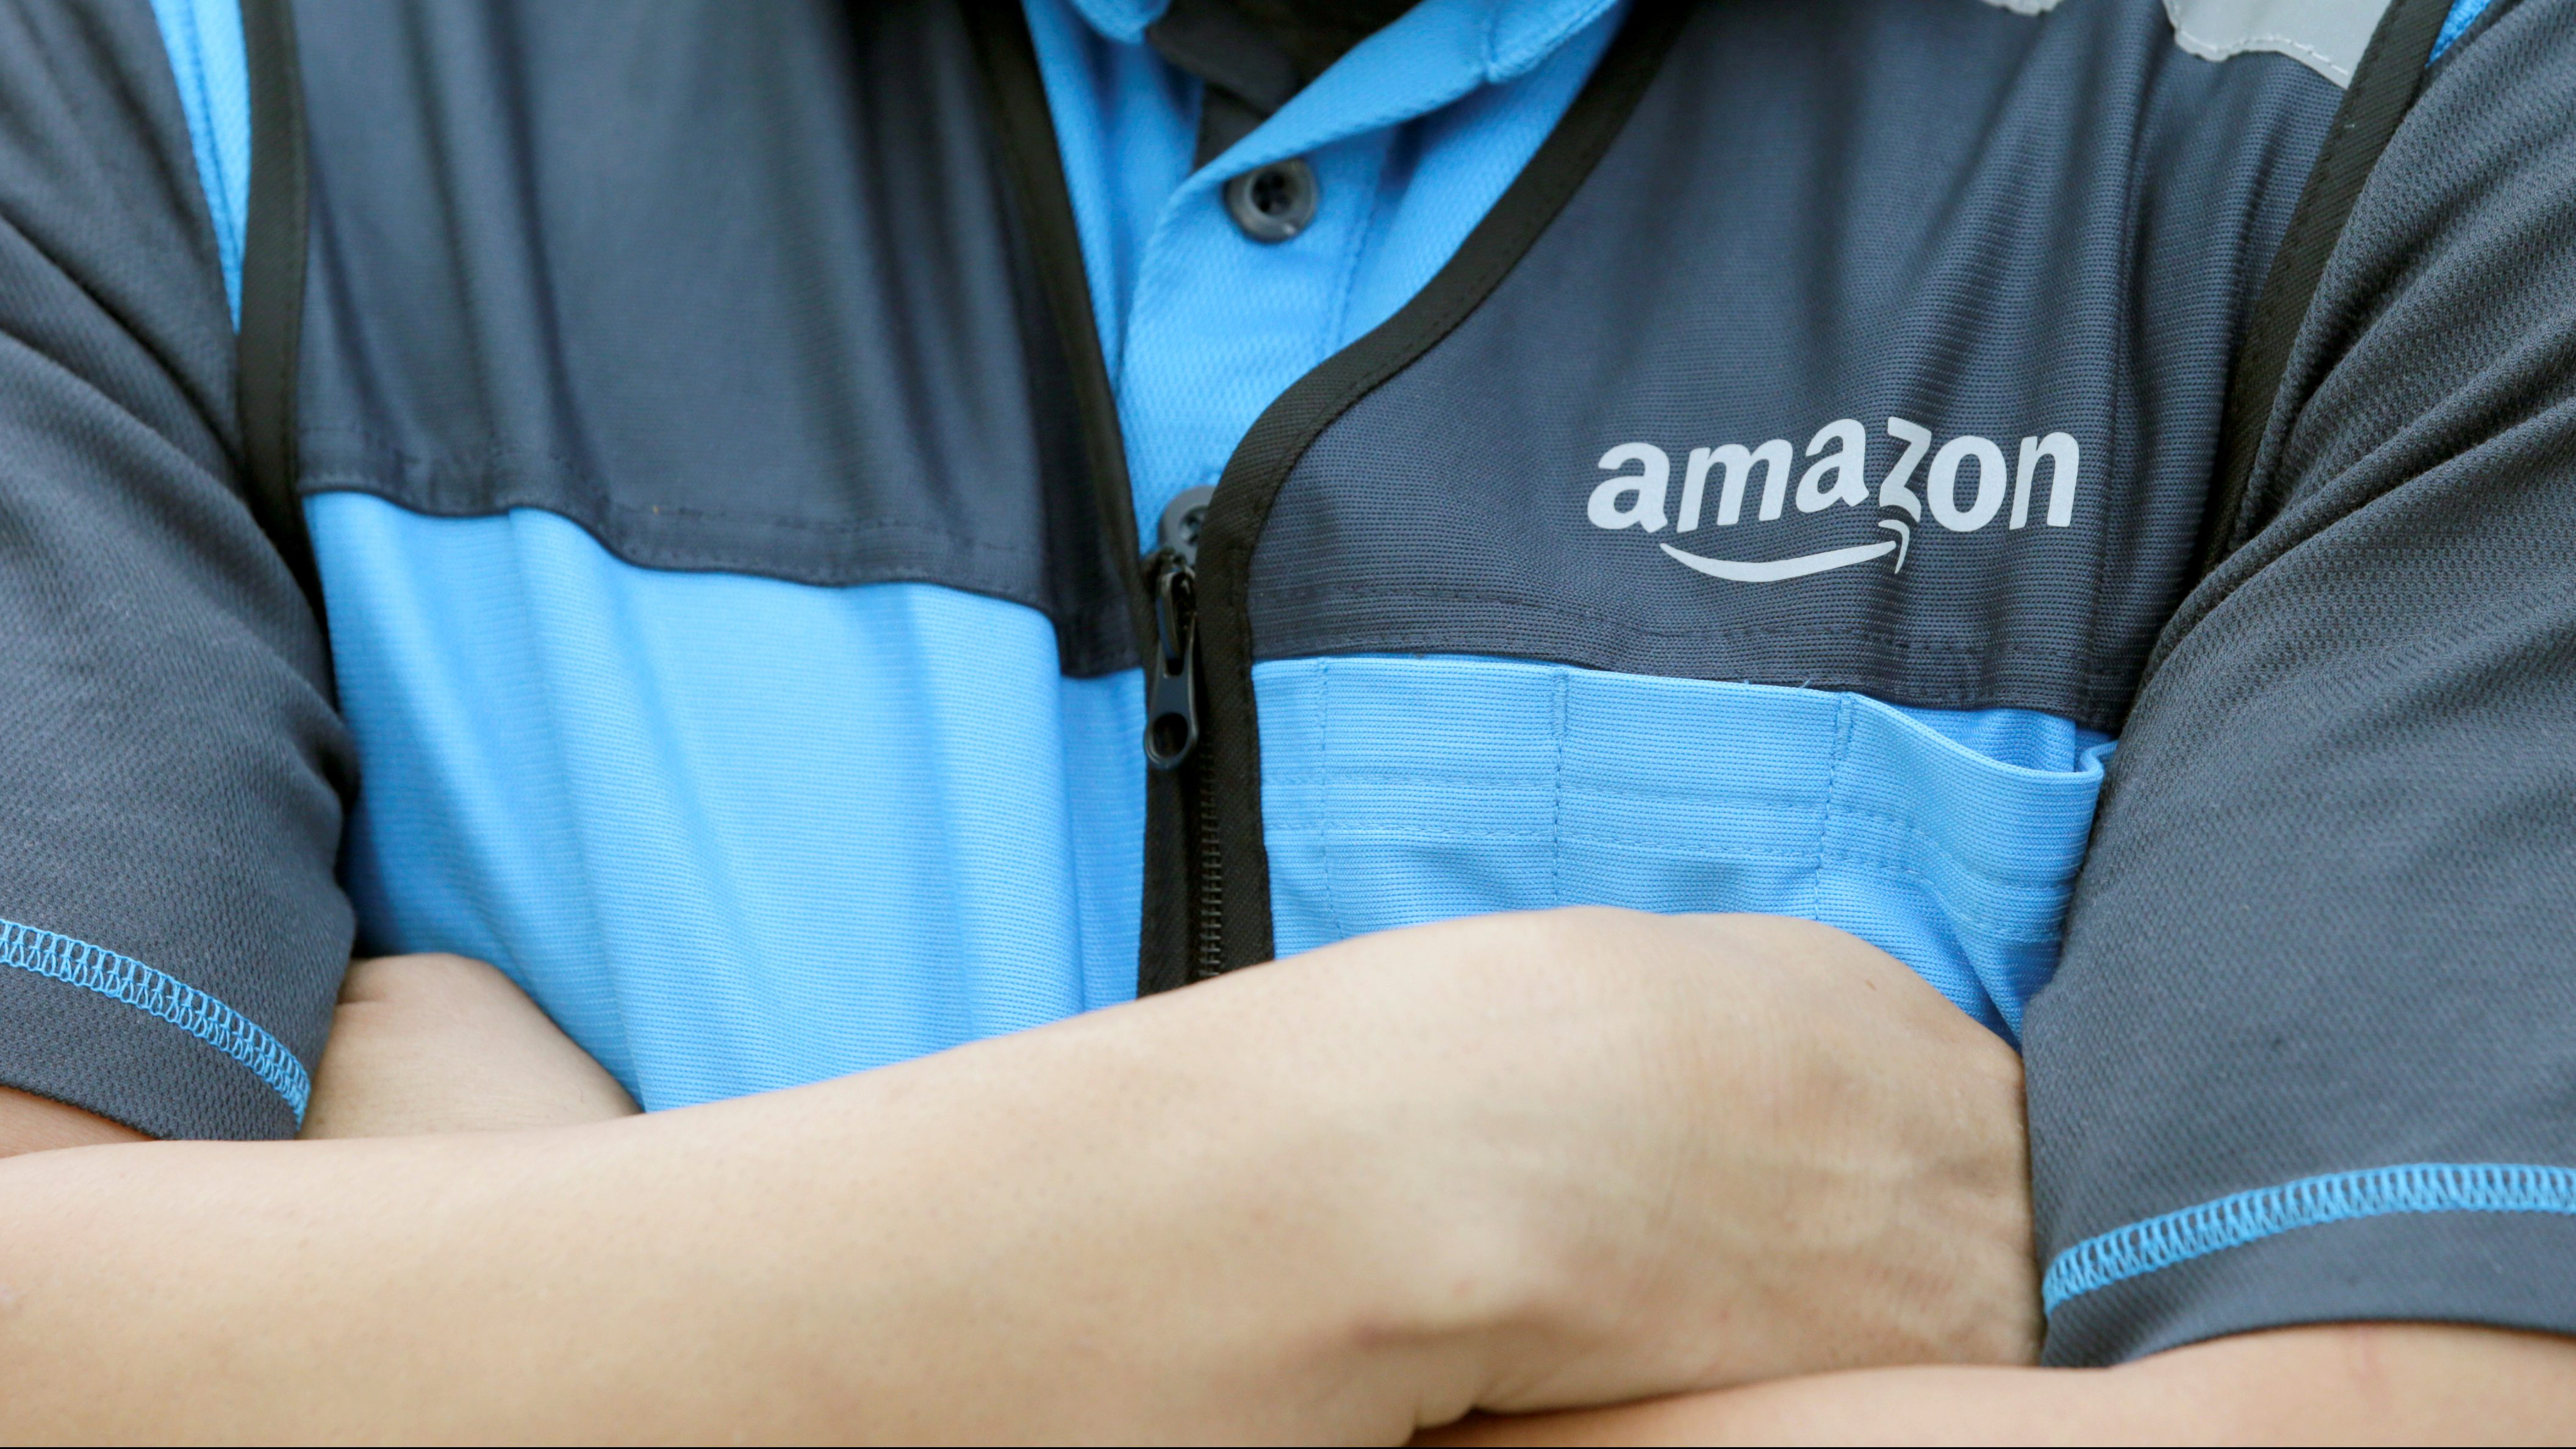 A close-up shot of an Amazon employee's shirt as he stands with his arms crossed